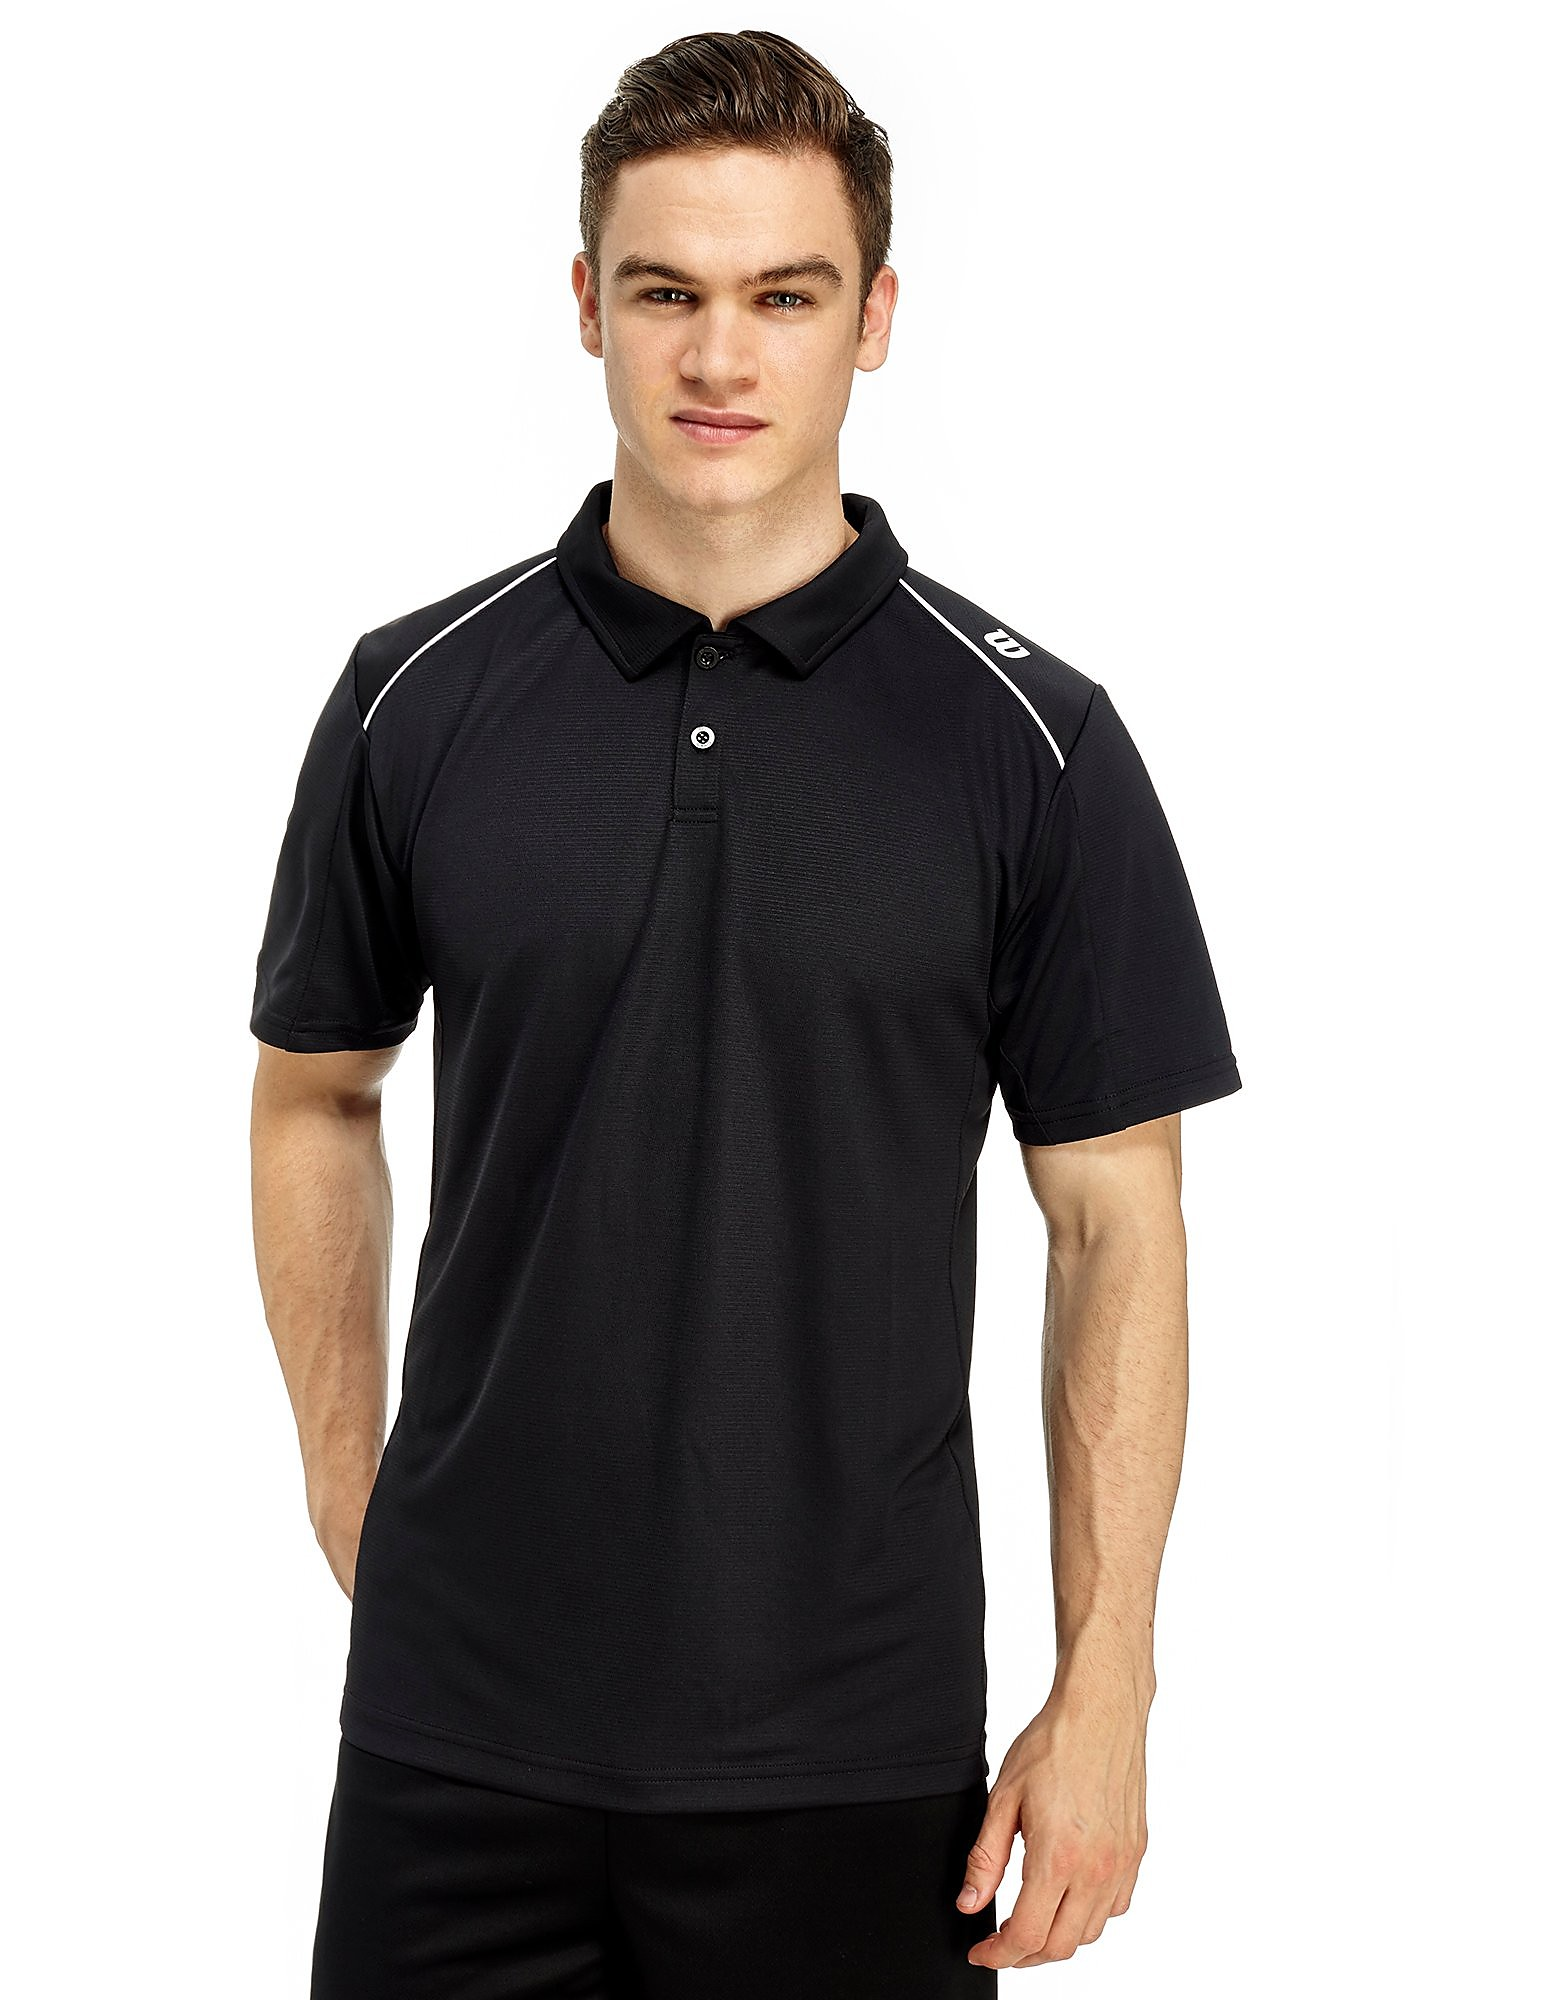 Wilson nVision Elite Polo Shirt